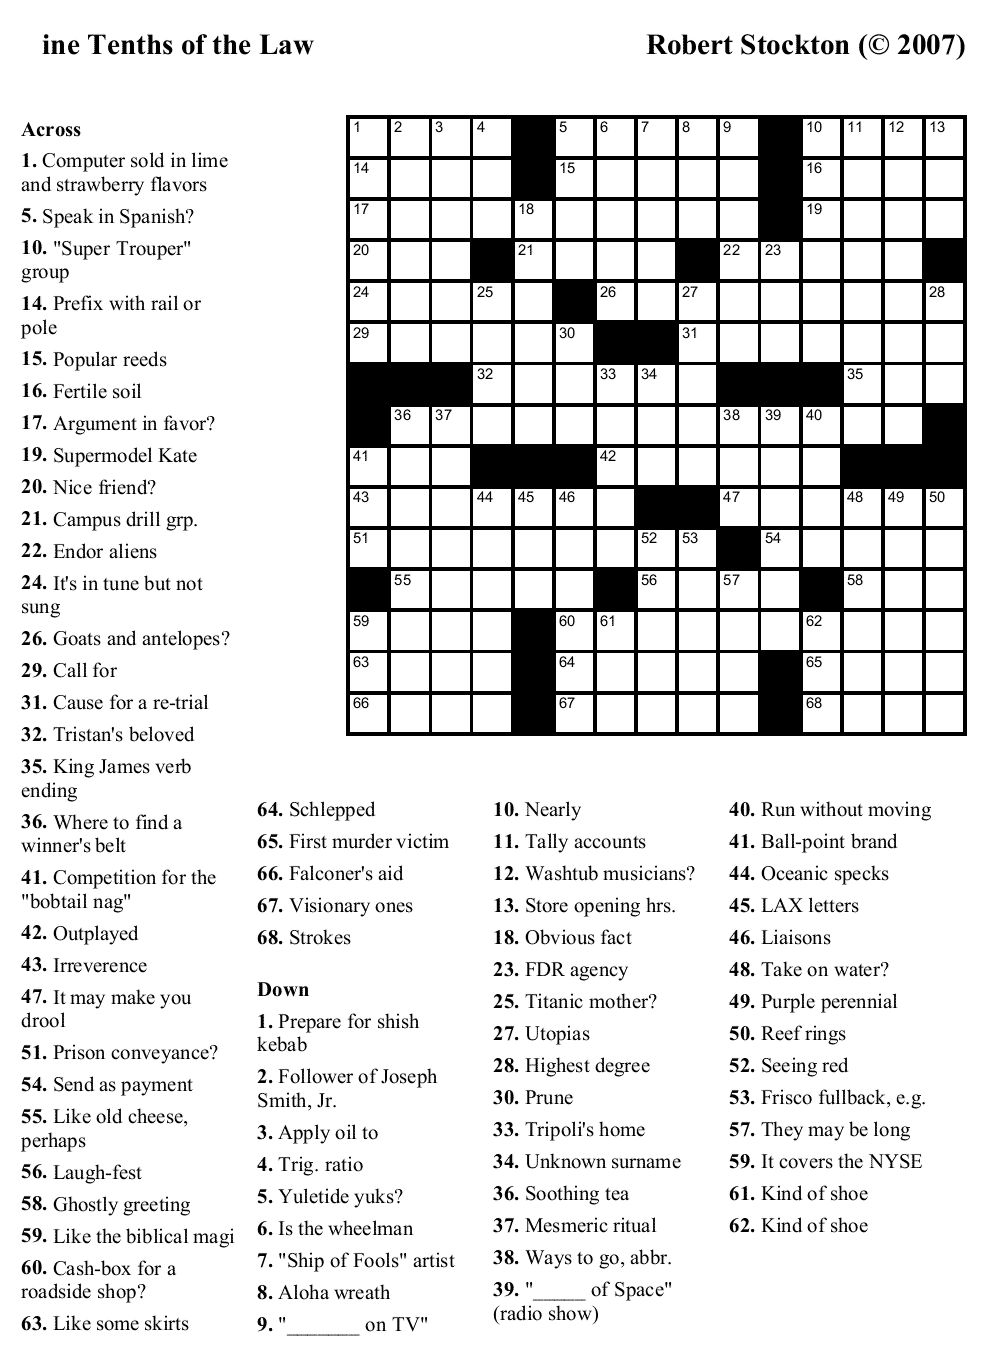 Crossword Puzzles Printable - Yahoo Image Search Results | Crossword - Printable Sports Crossword Puzzles For Adults